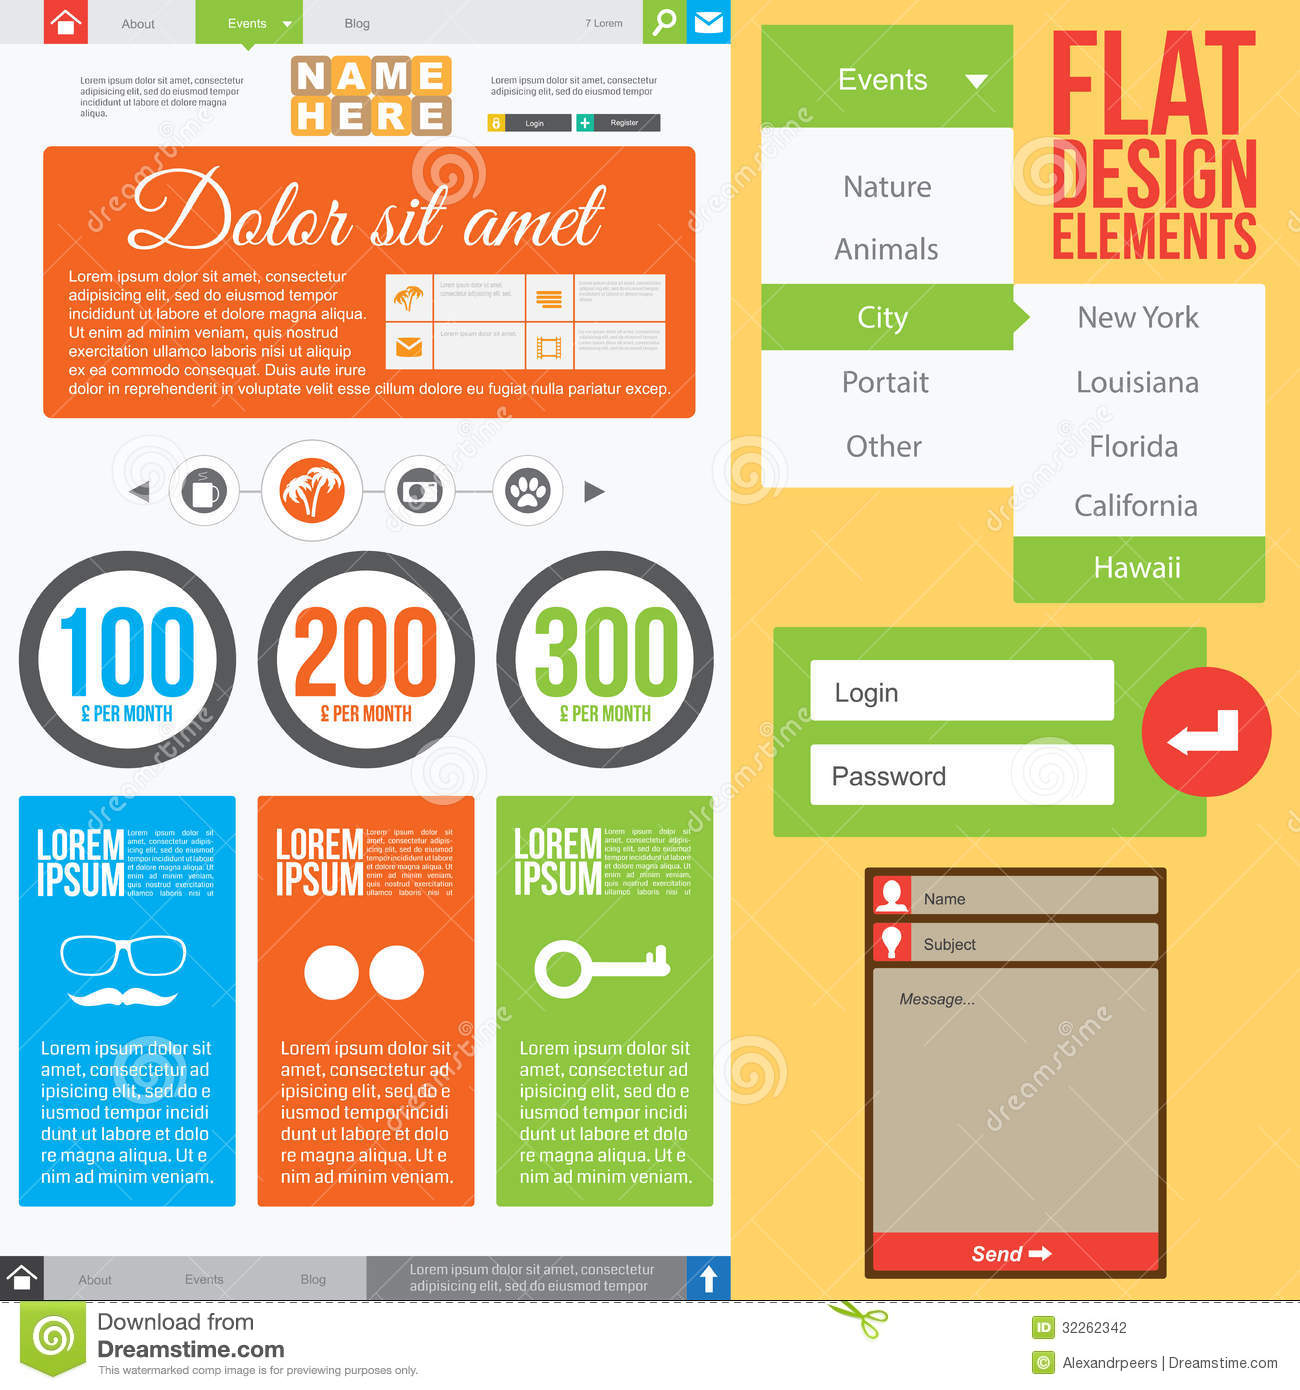 Elements For Design : Flat web design stock vector image of creative